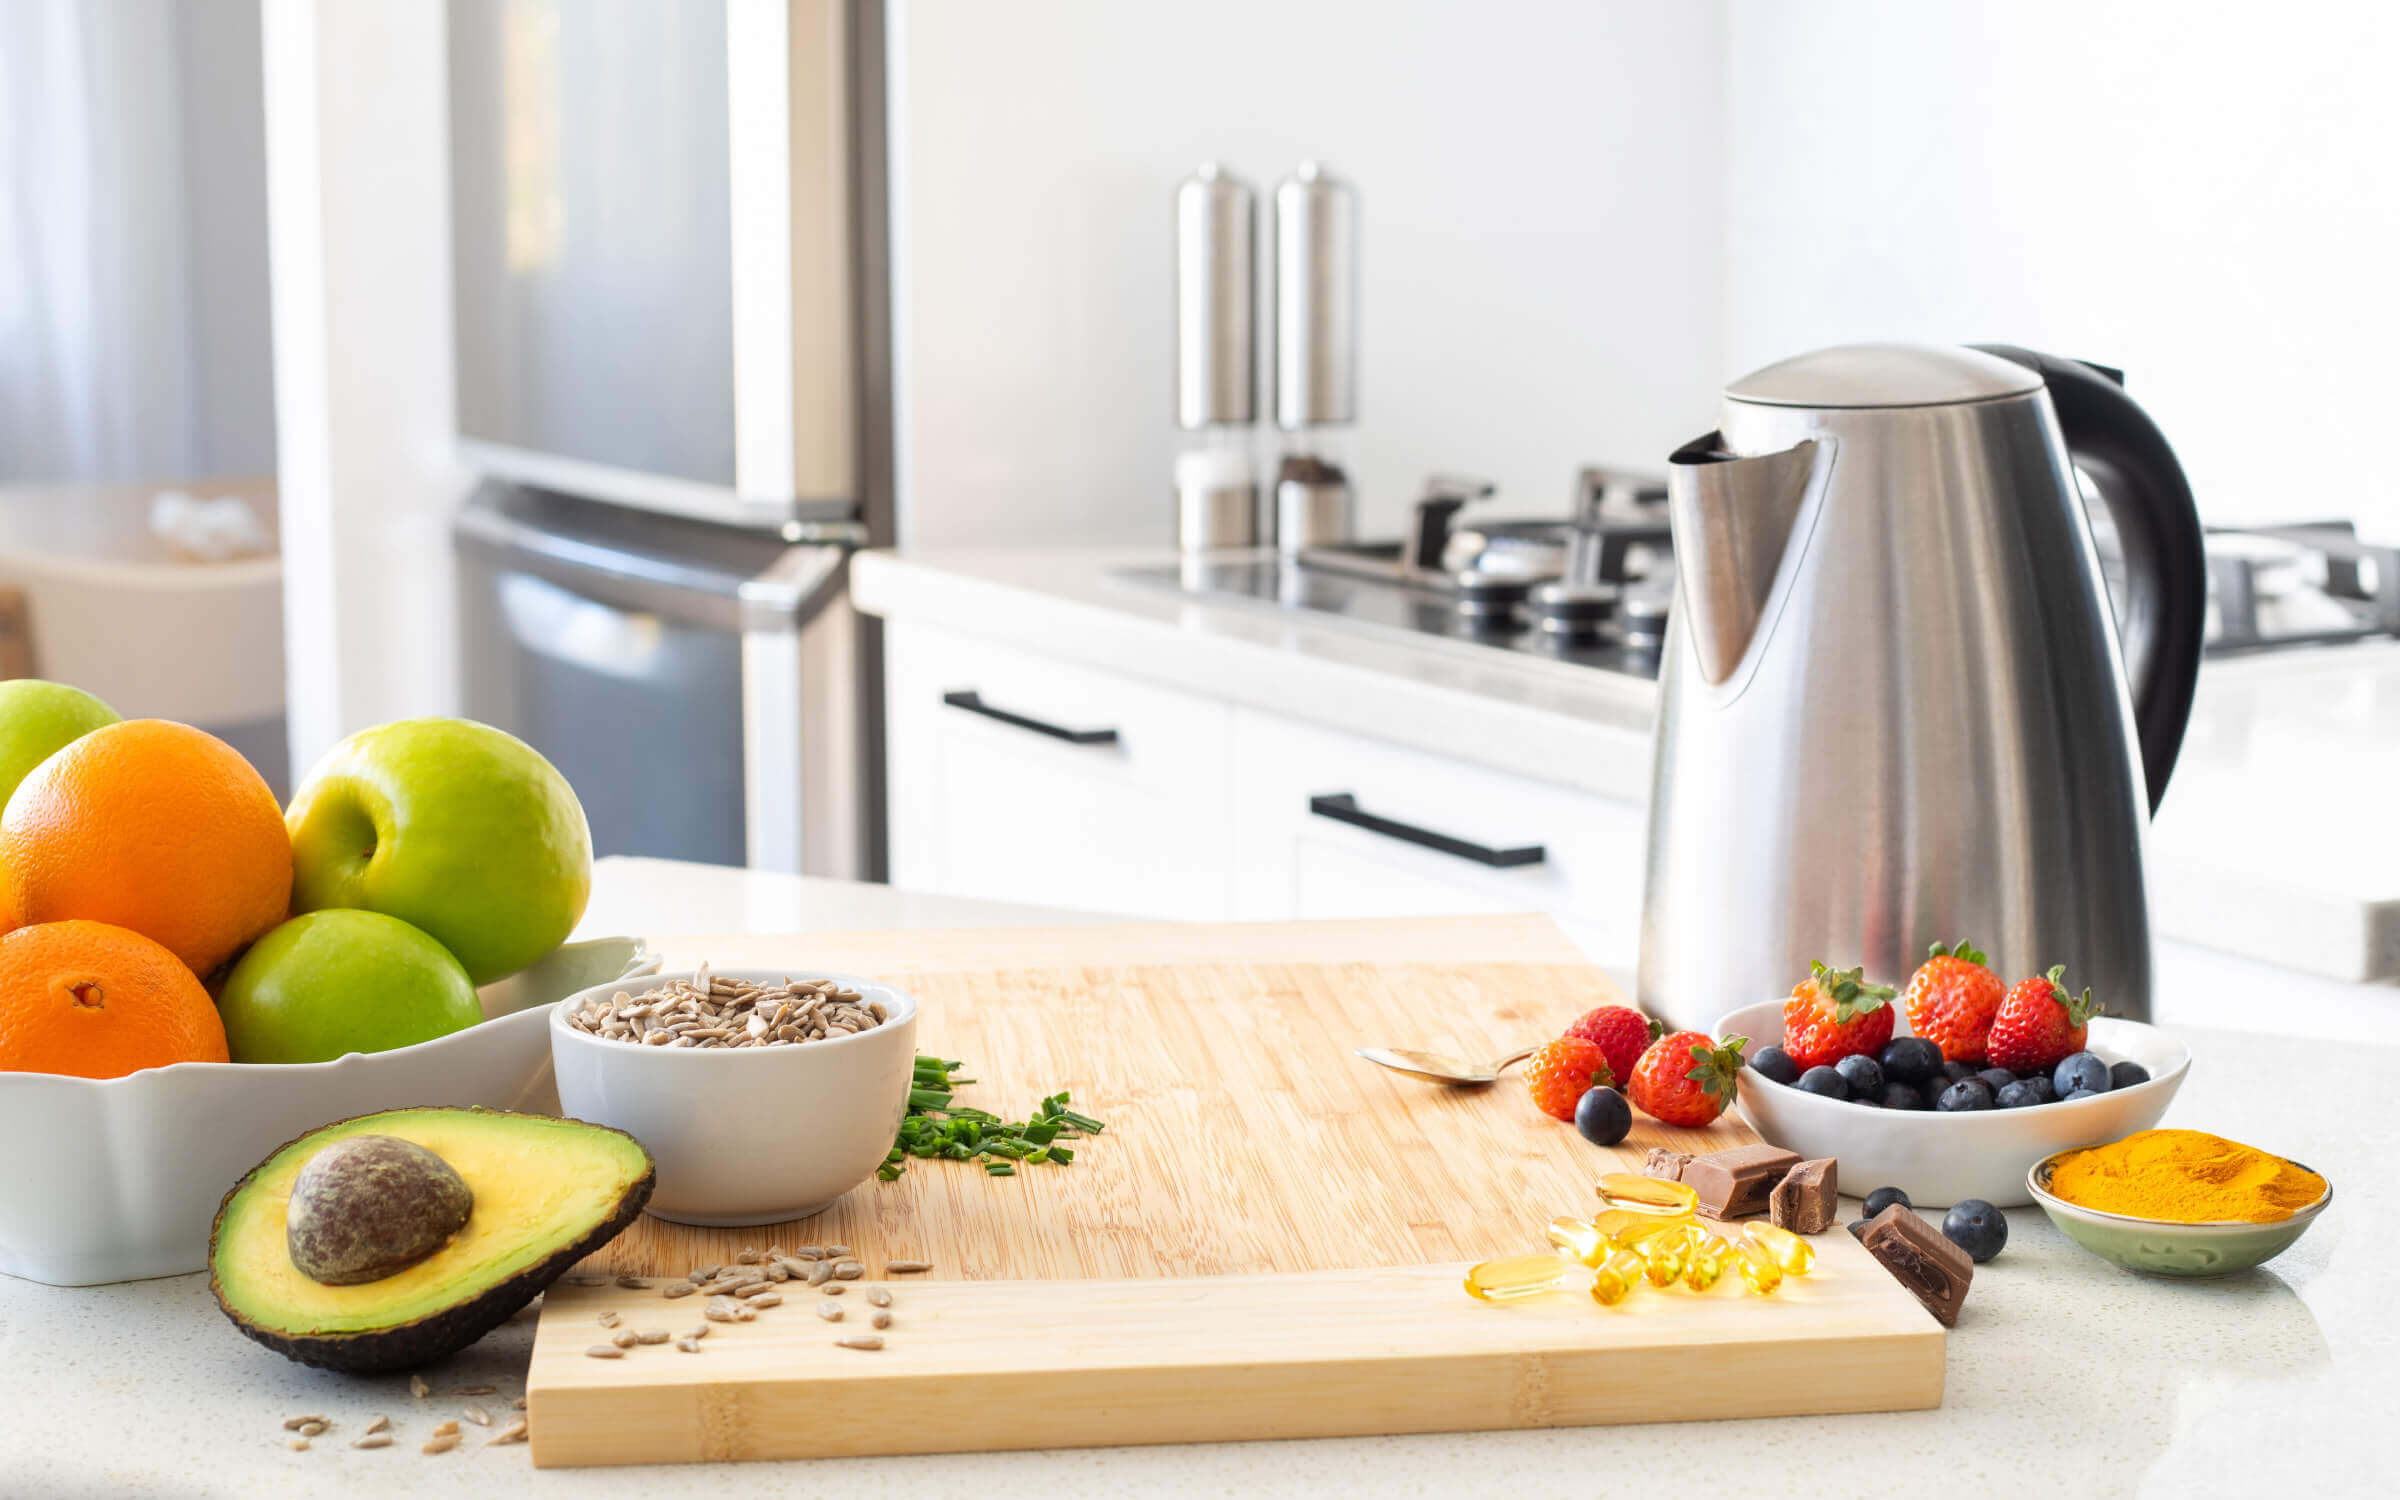 Kitchen setting with kettle, bowl of fruit, seeds, spices and supplement pills